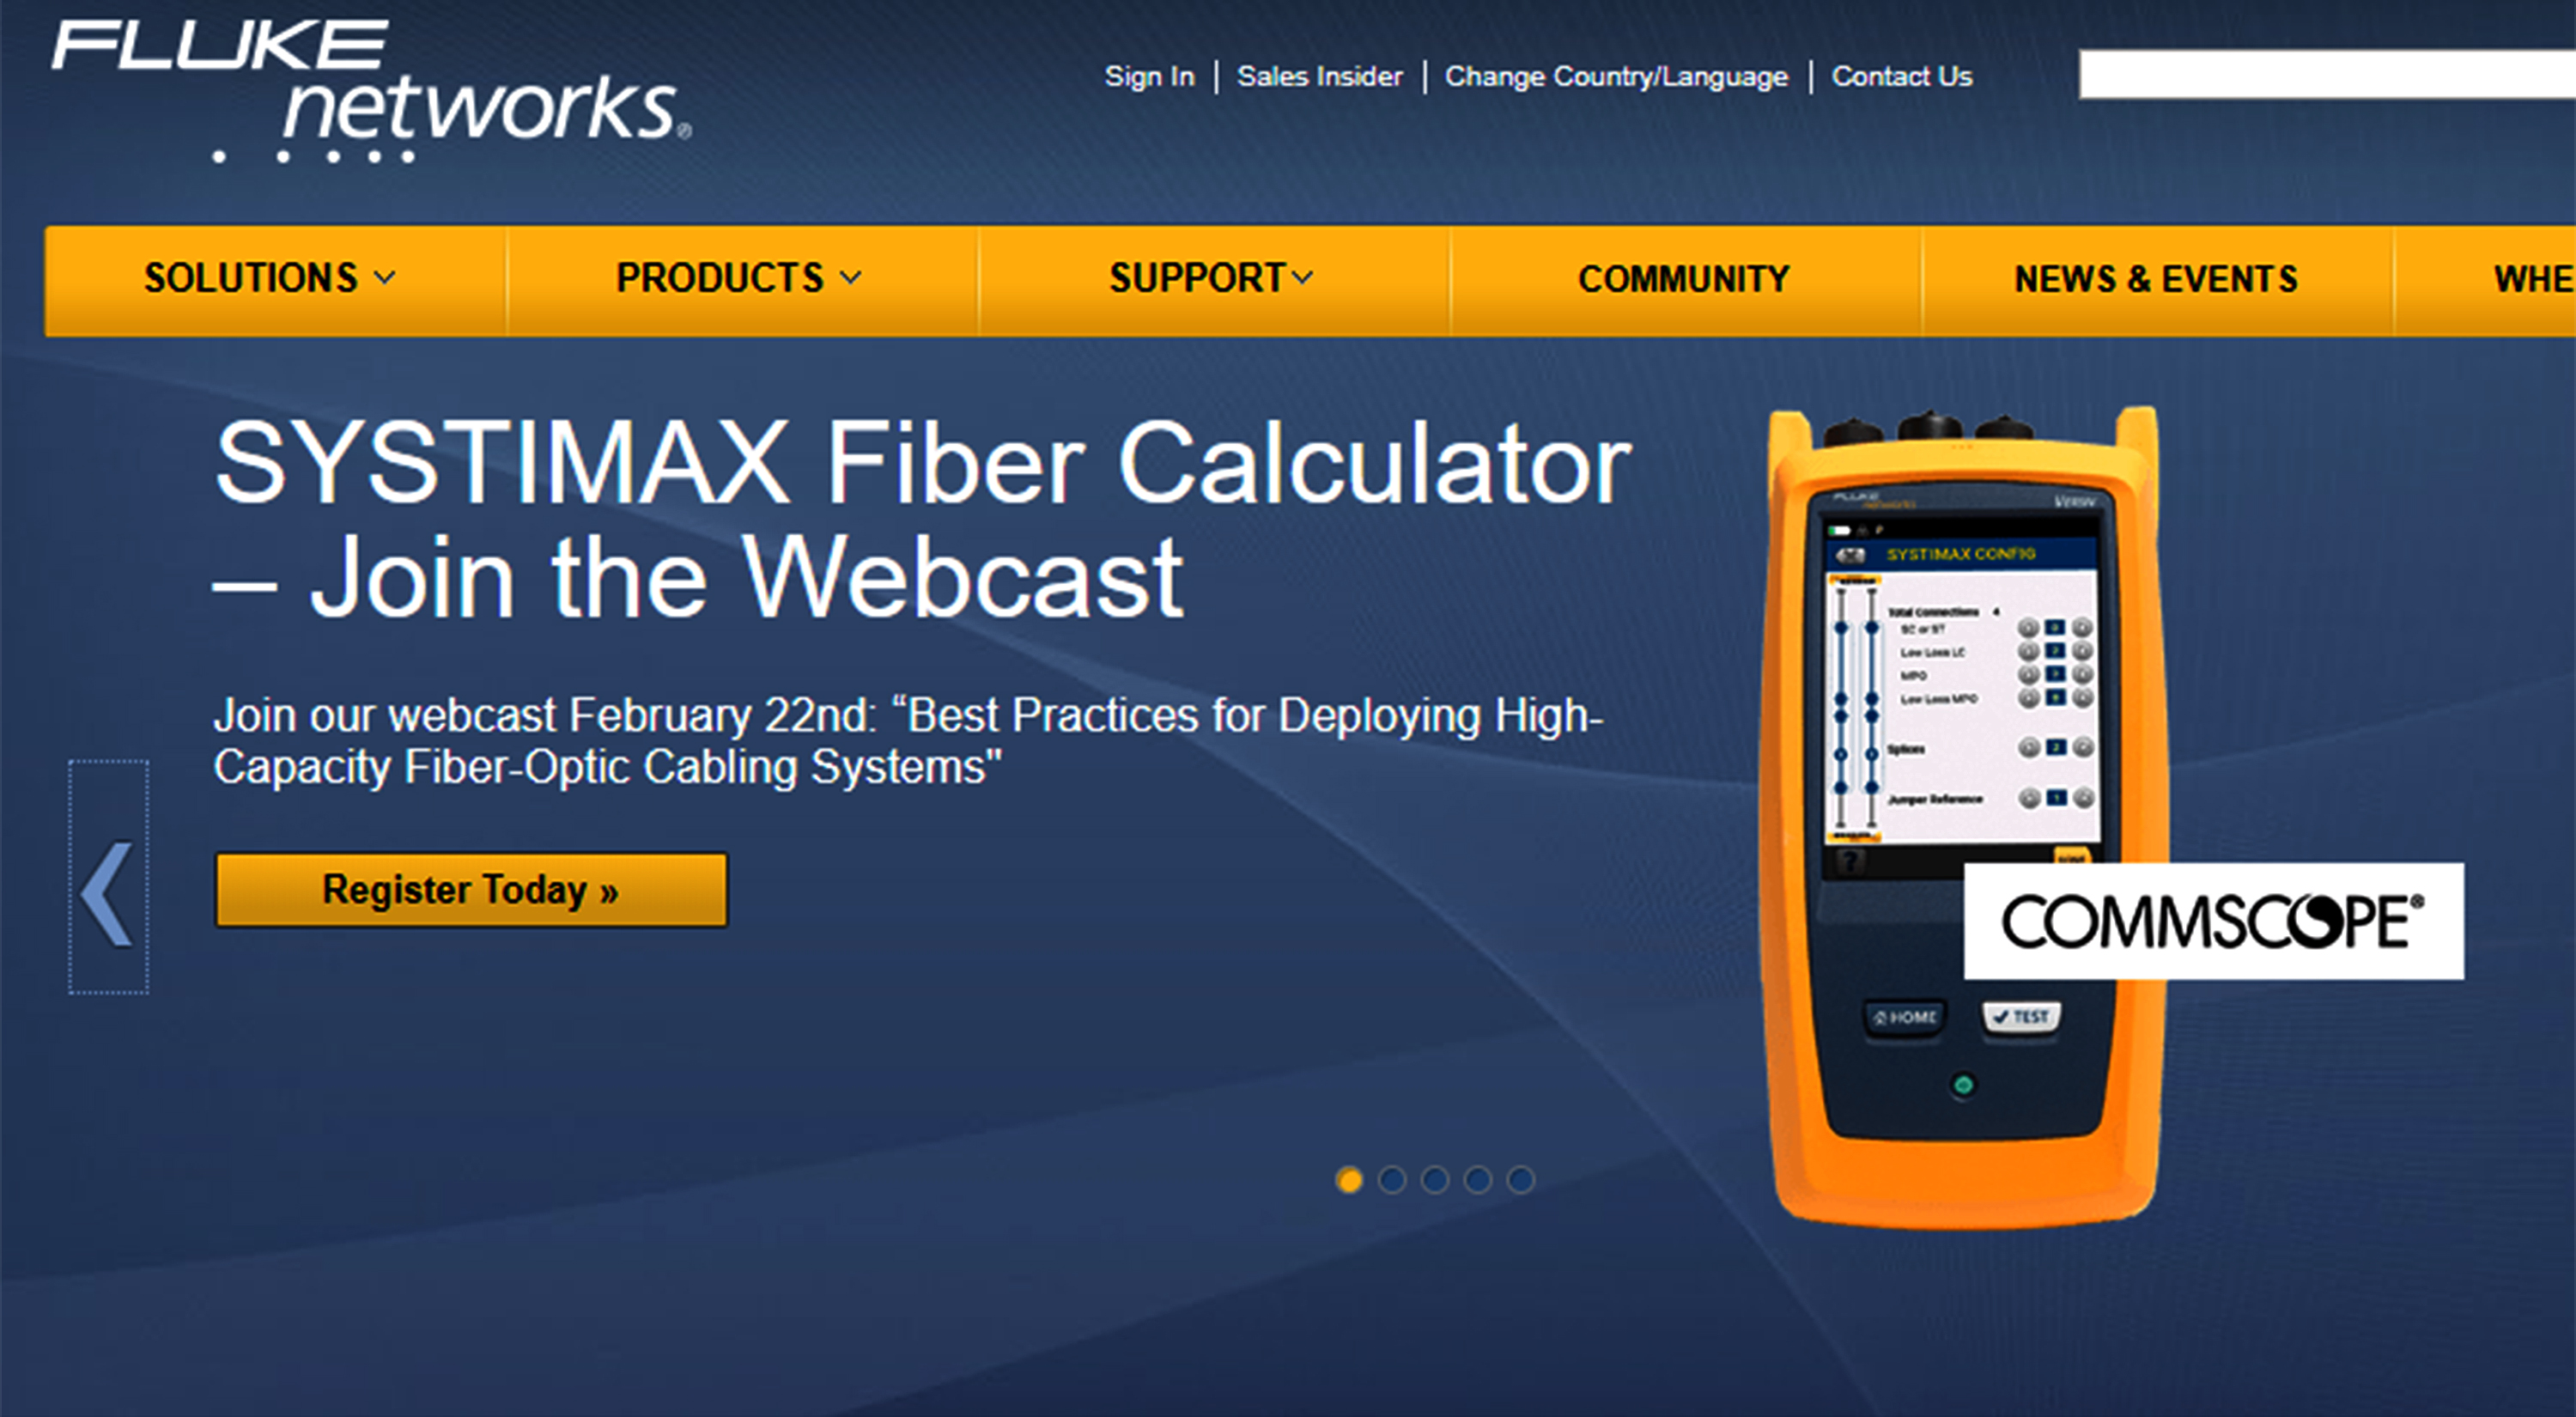 Commscope Partners With Fluke Networks To Improve Certification Of